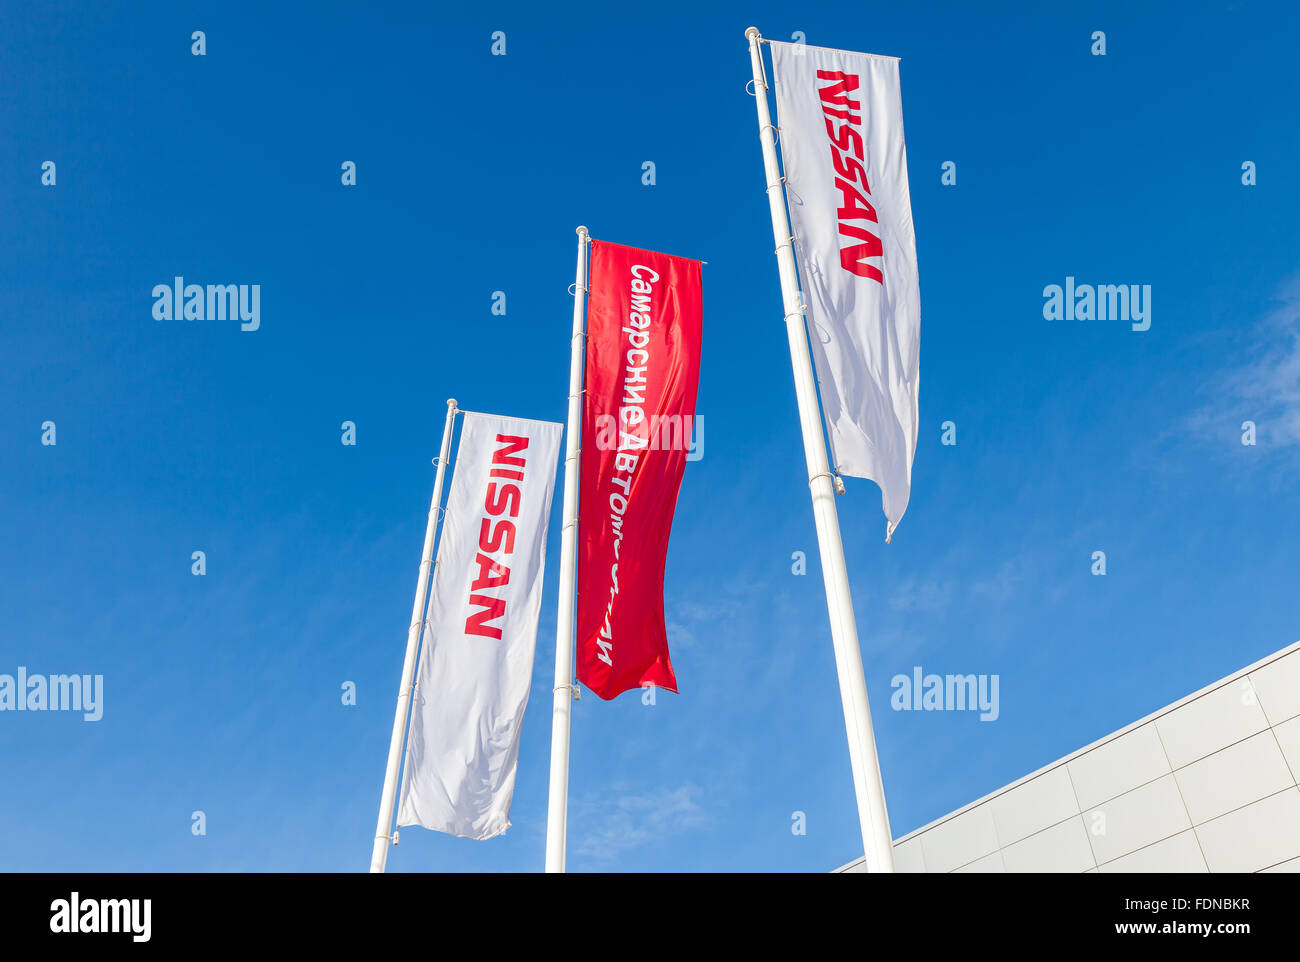 The flags of official dealer Nissan over blue sky Stock Photo